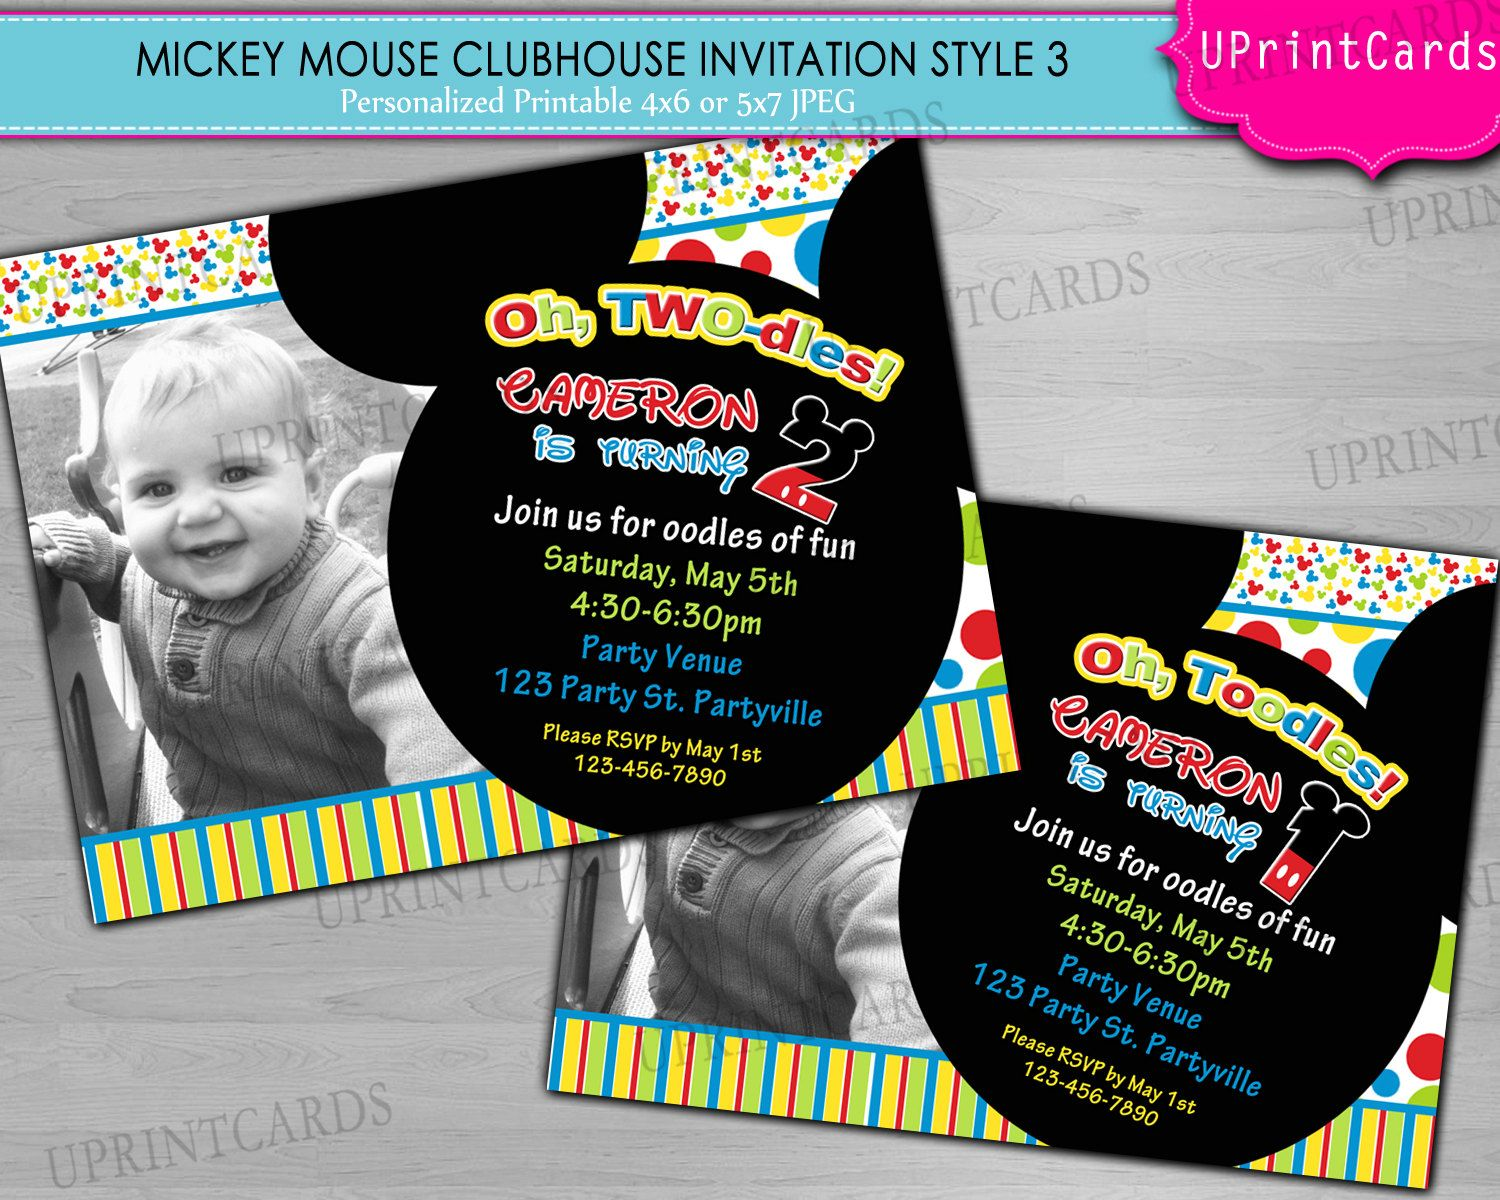 Mickey Mouse Clubhouse Party Ideas Homemade | DIY PRINTABLE - Mickey ...